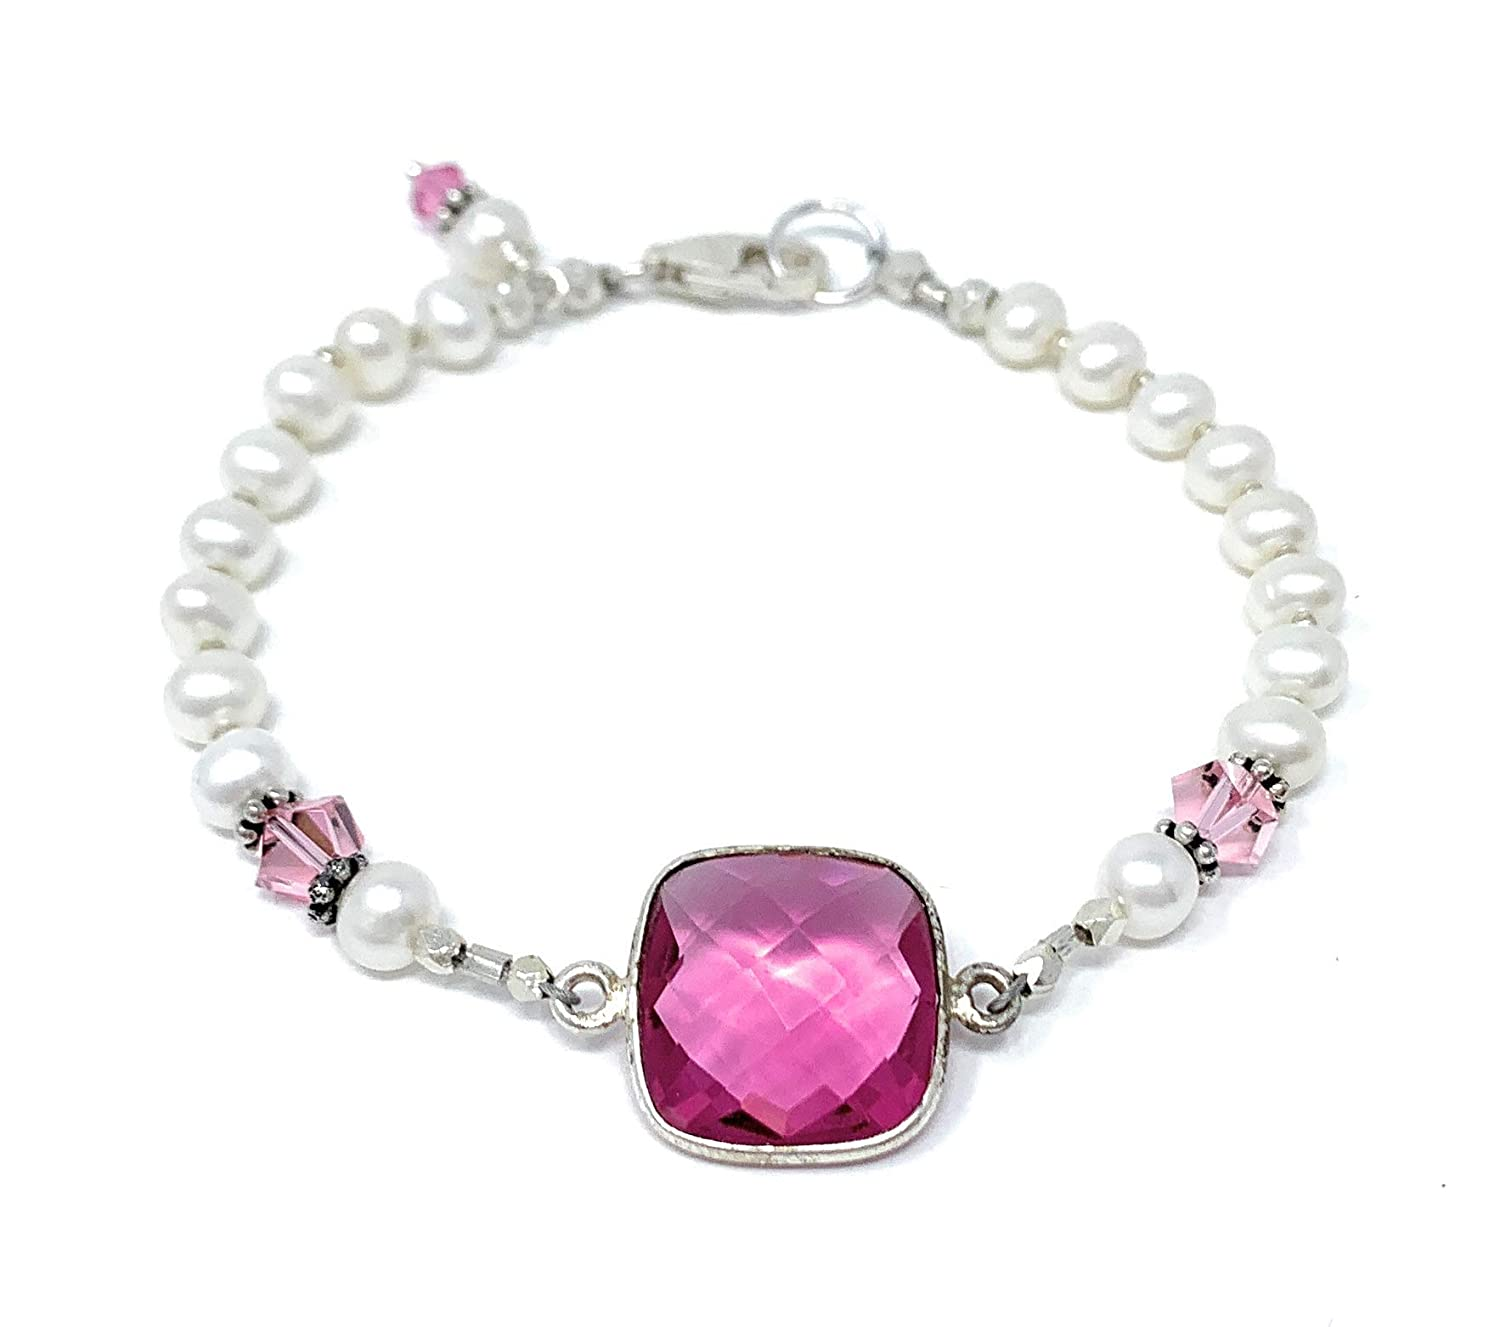 Pearl and San Diego Mall Pink Glass Bracelet Swarovski Crystals Sterli with quality assurance